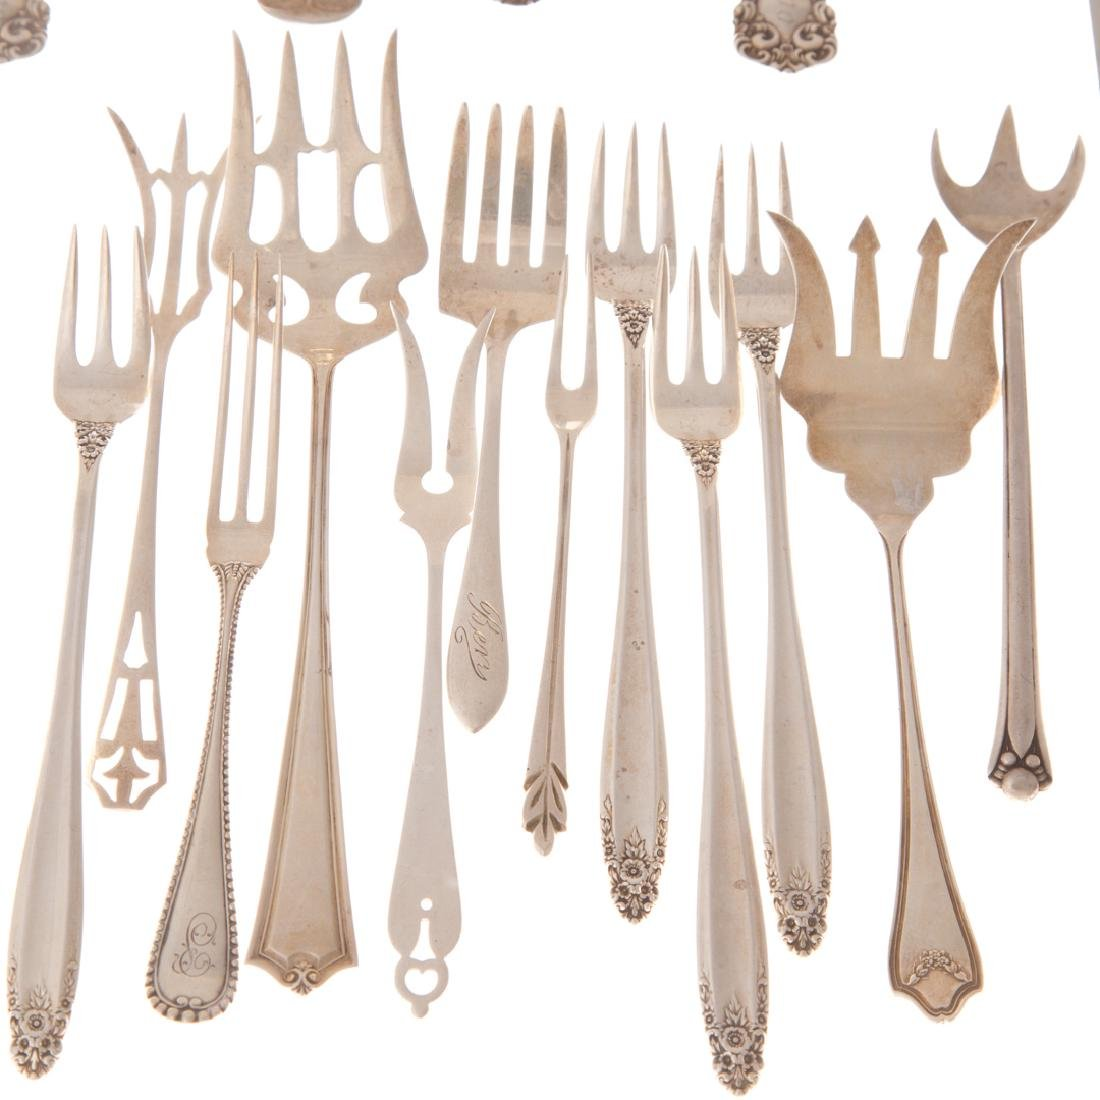 Collection of sterling silver flatware - 3